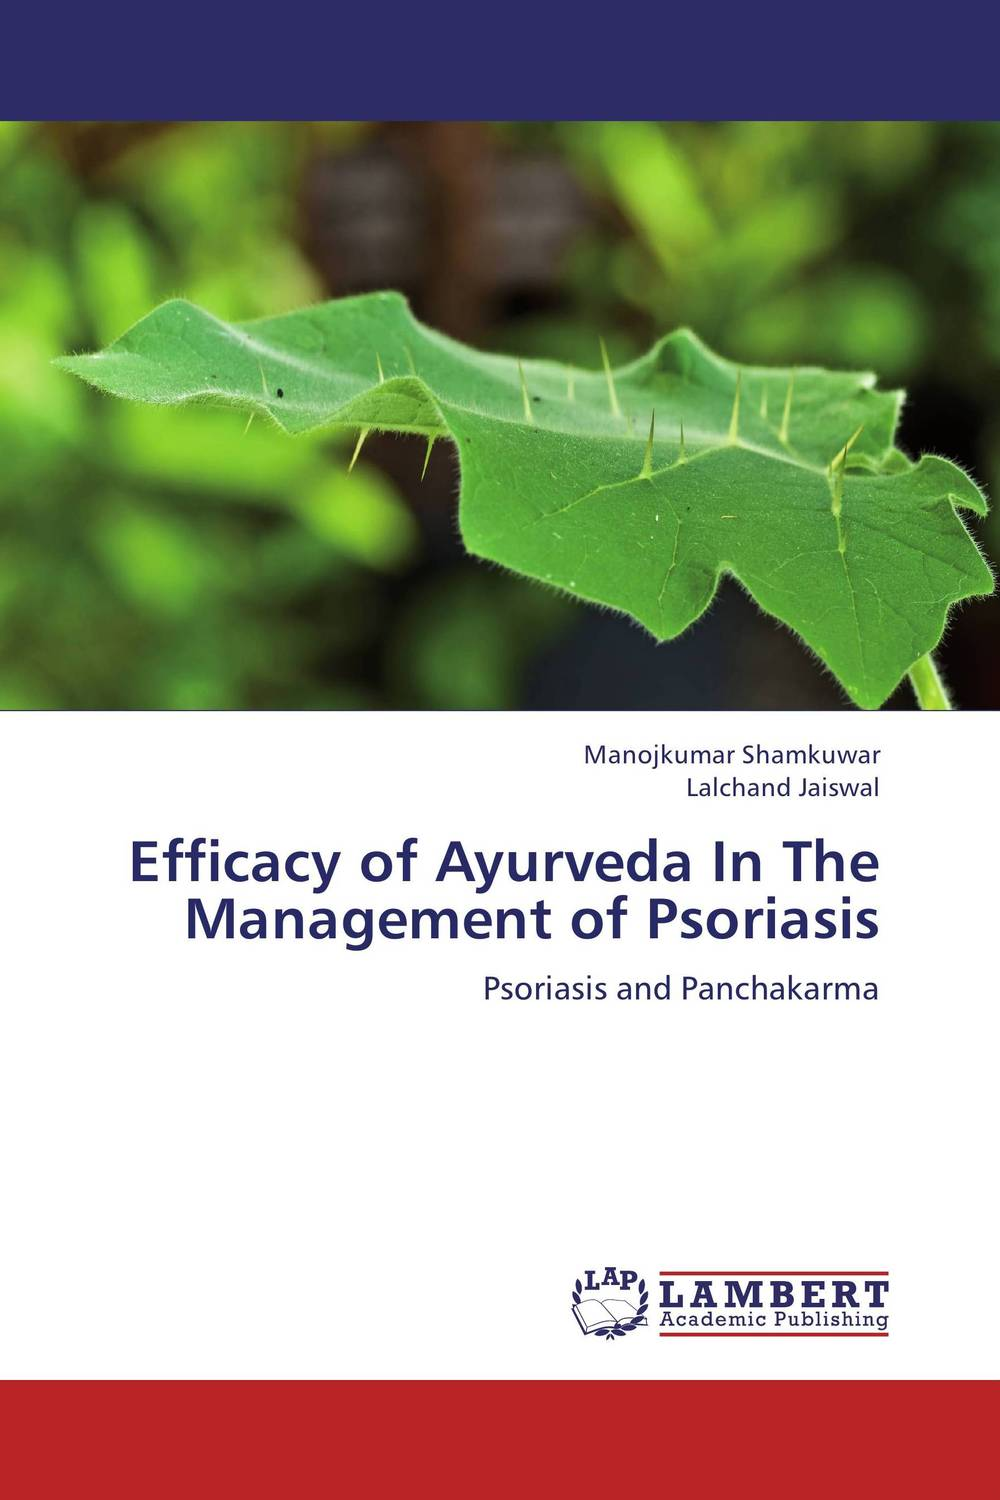 Efficacy of Ayurveda In The Management of Psoriasis benign enlargement of prostate gland bep in ayurveda